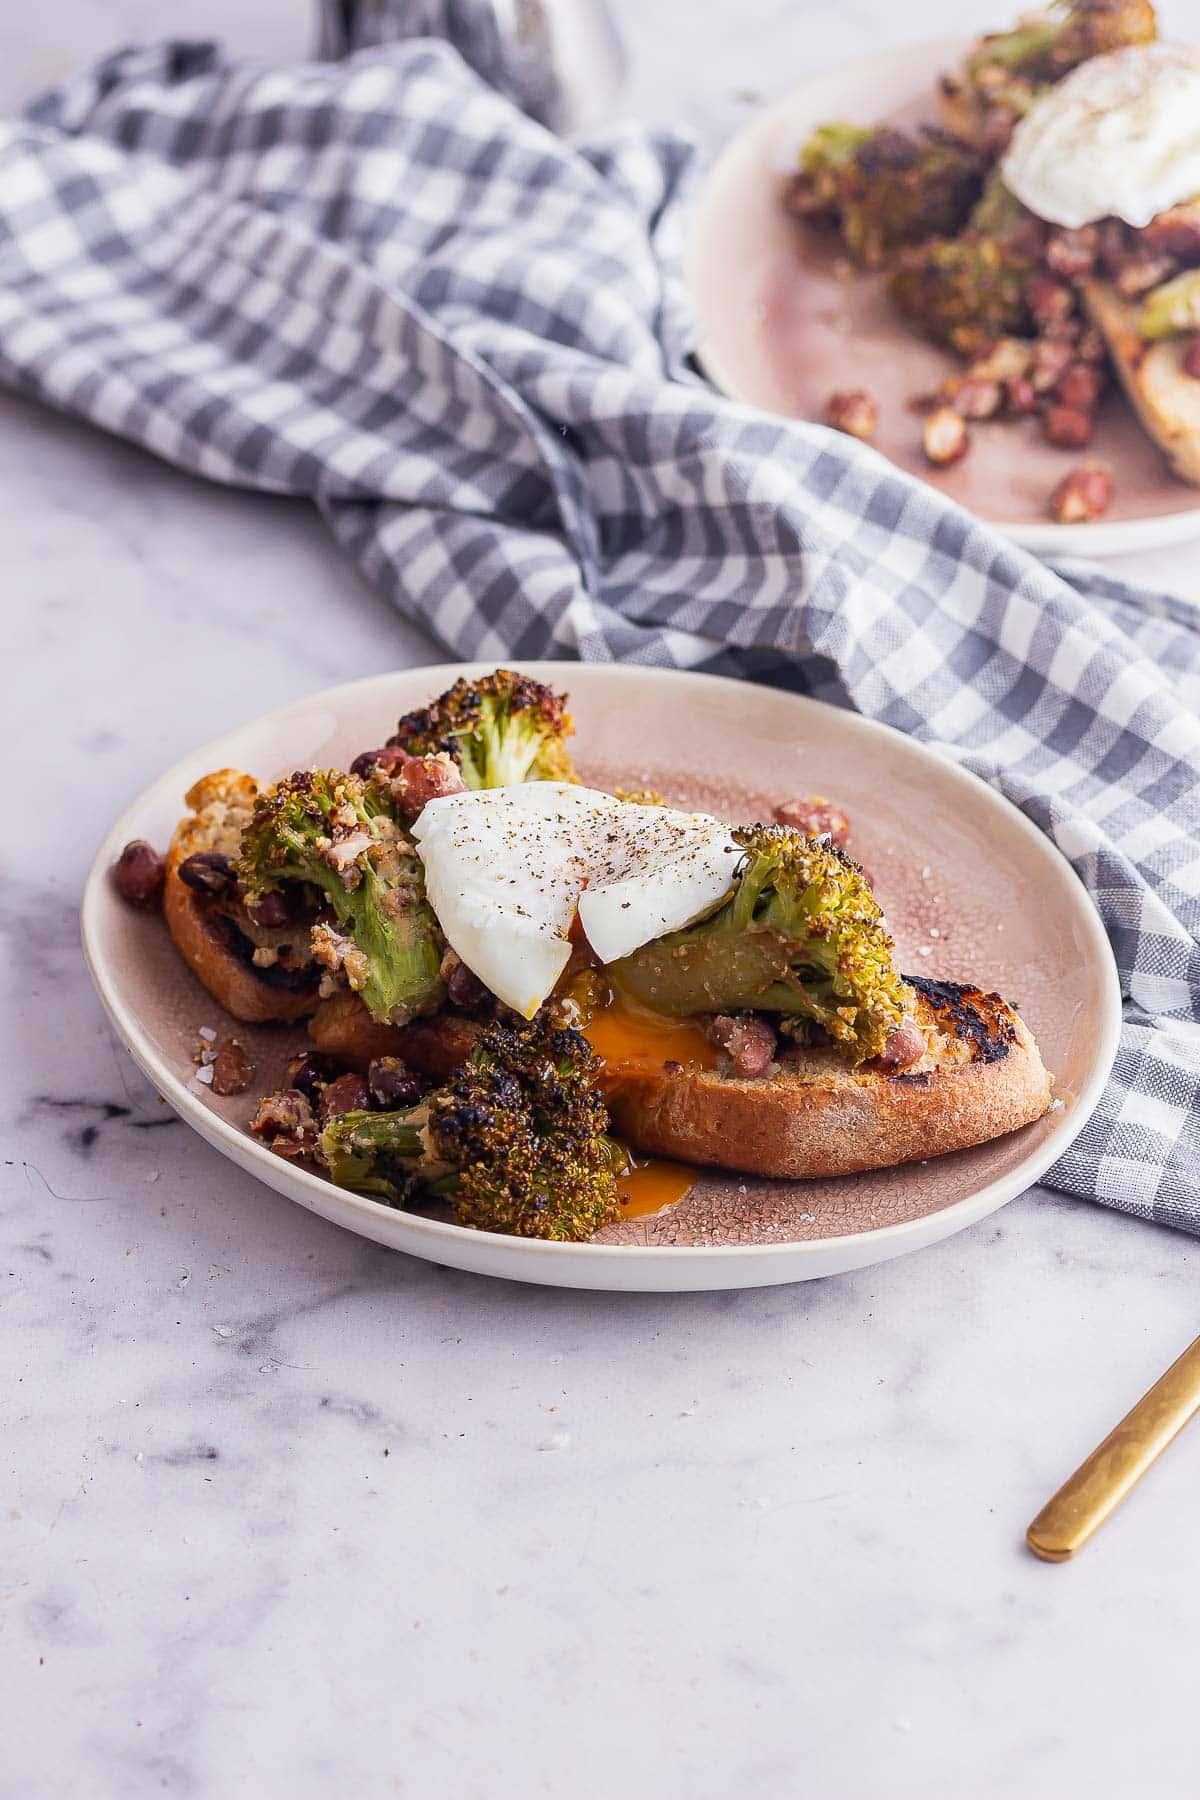 Runny poached egg on broccoli and bean toasts on a marble surface